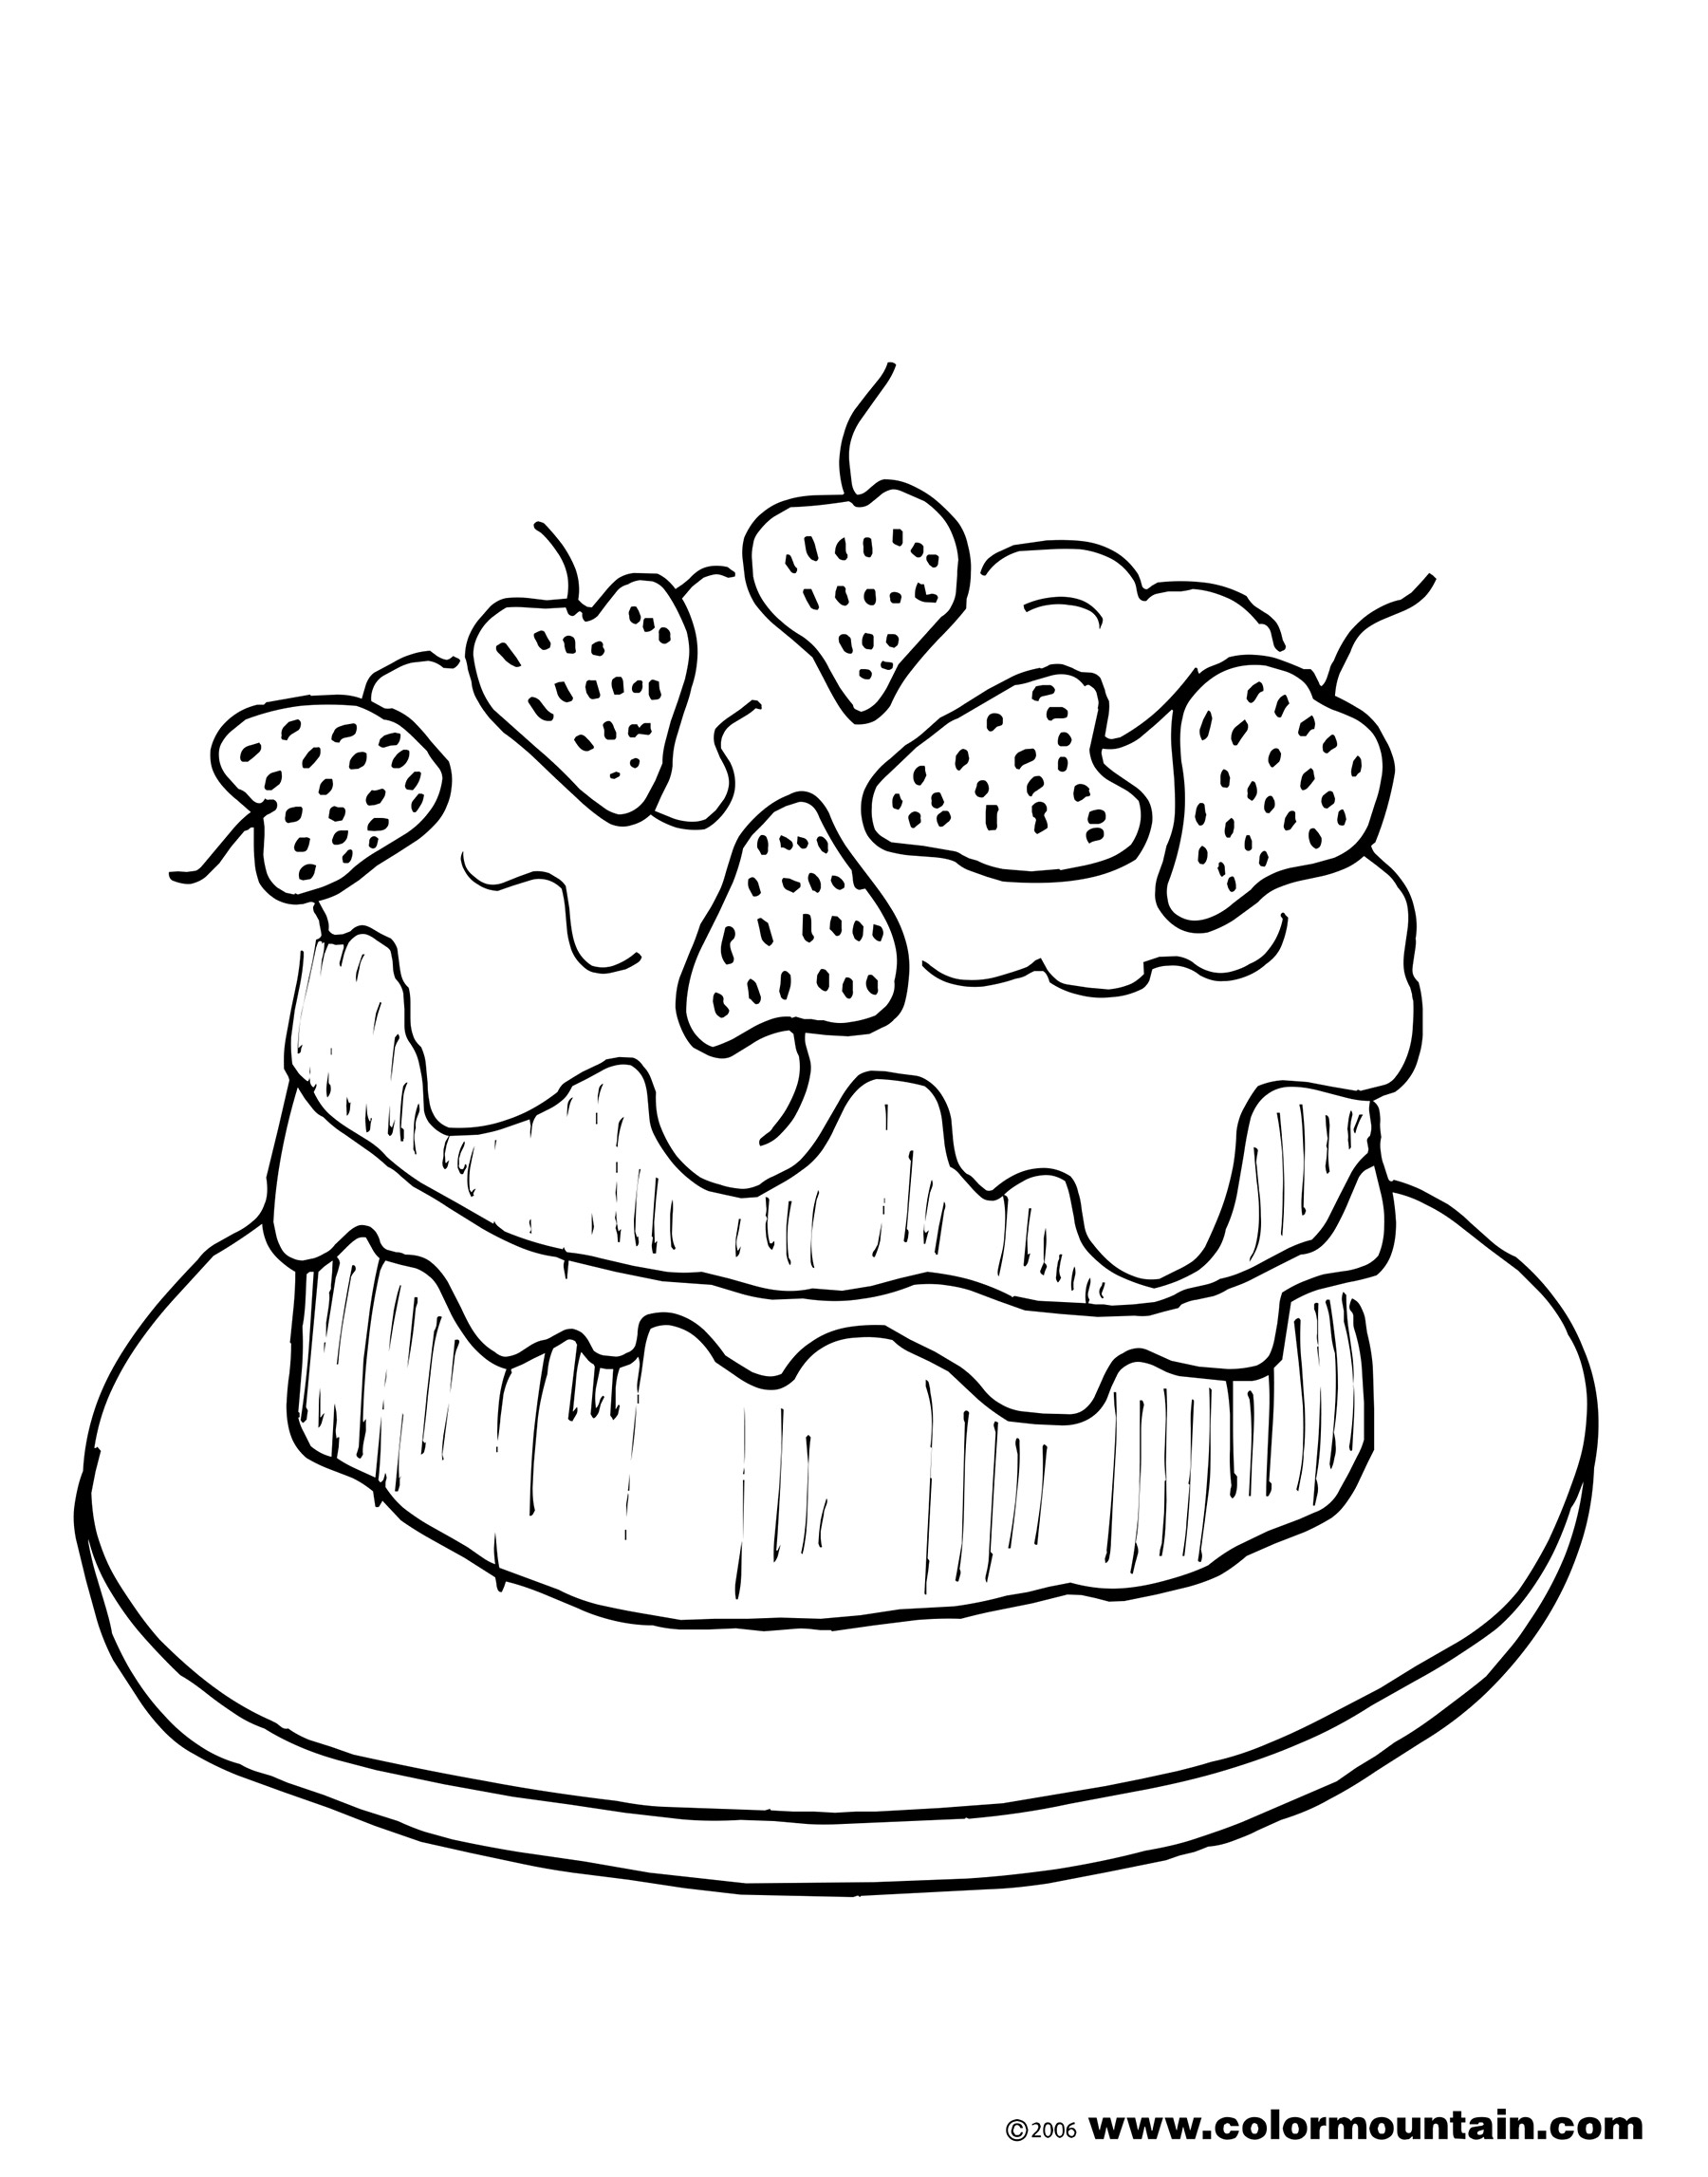 strawberry cake coloring pages strawberry cake slice coloring pages strawberry cake coloring cake pages strawberry